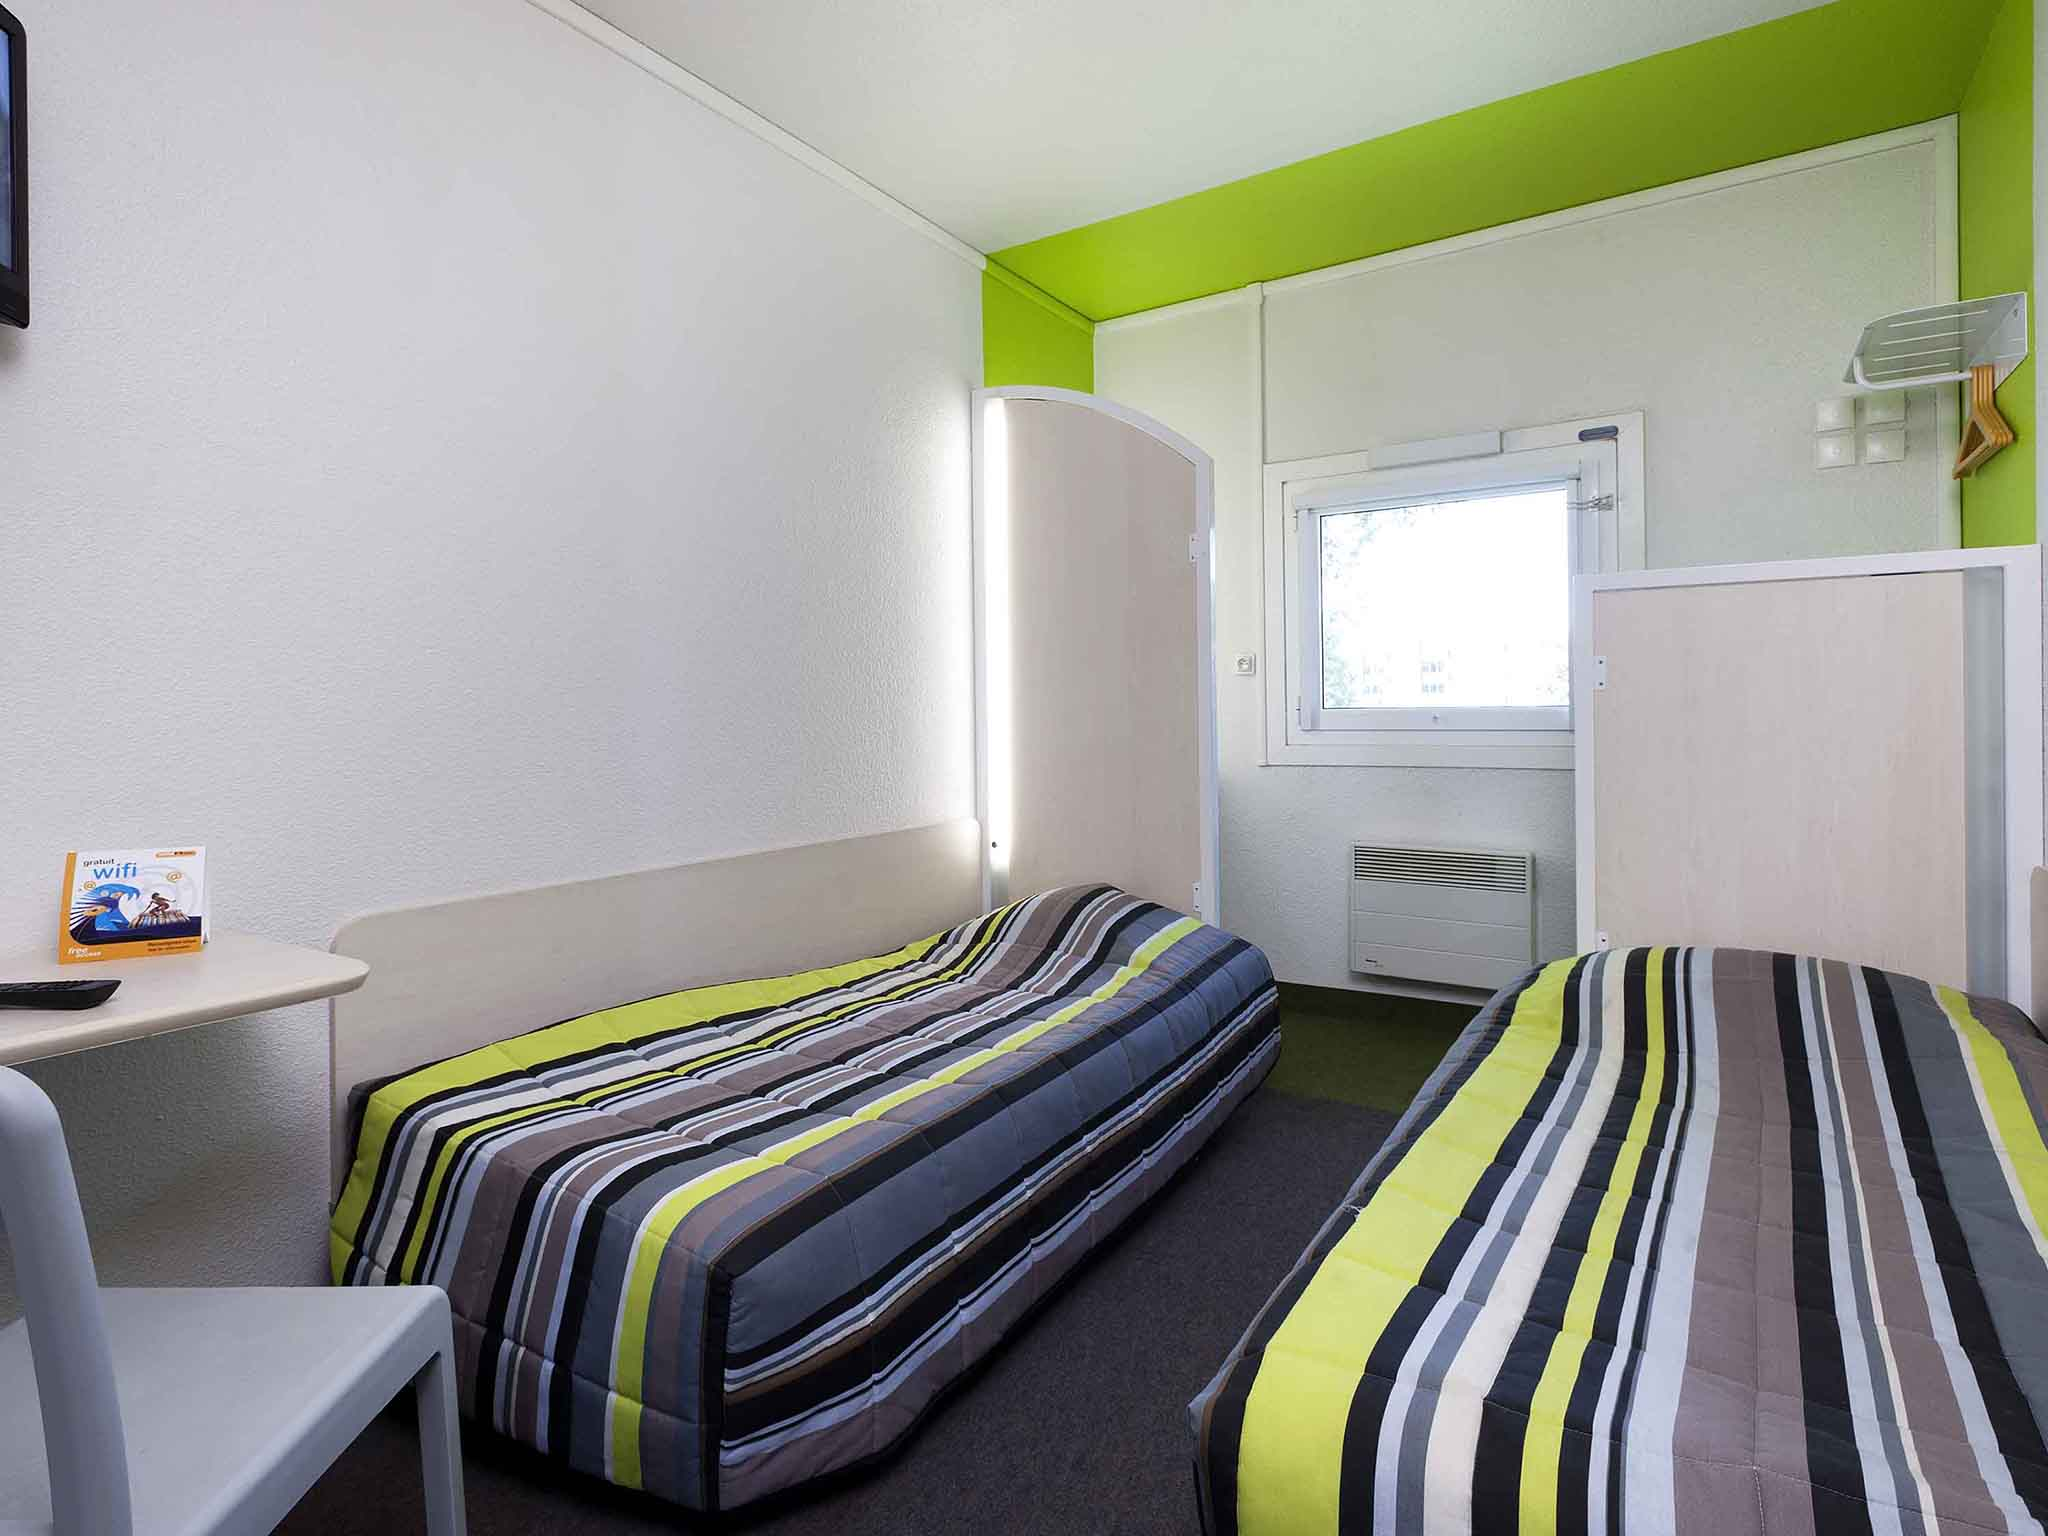 Otel – hotelF1 Angers Ouest Beaucouzé